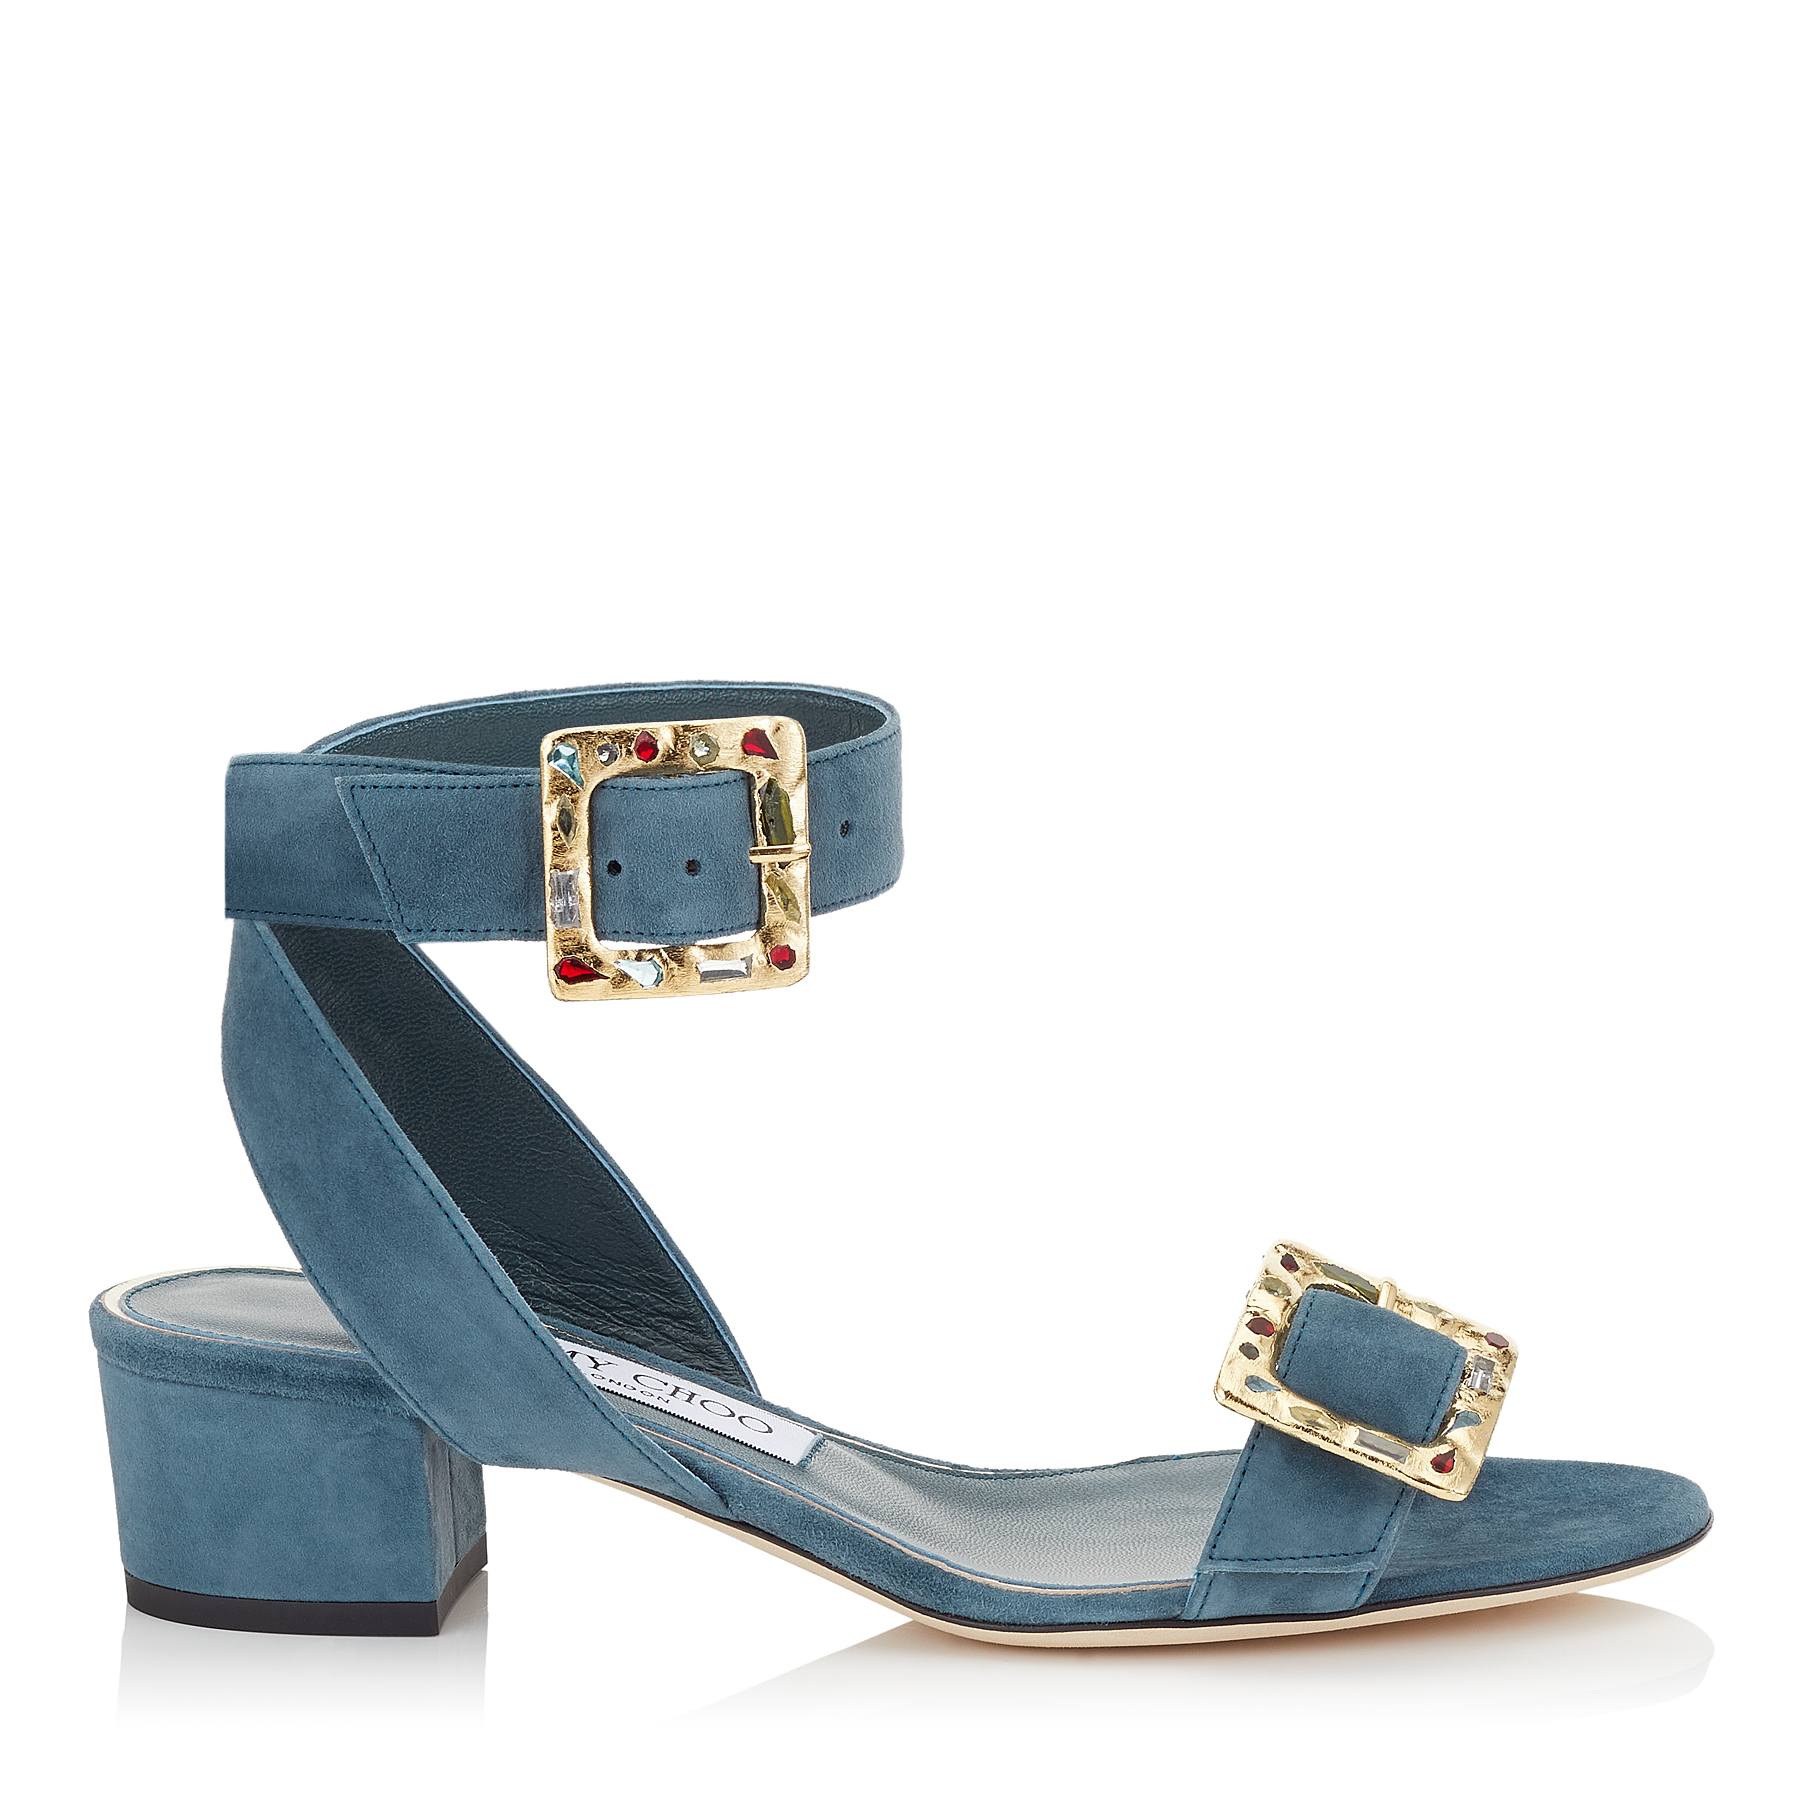 DACHA 35 Dusk Blue Suede Sandals with Jewelled Buckle by Jimmy Choo